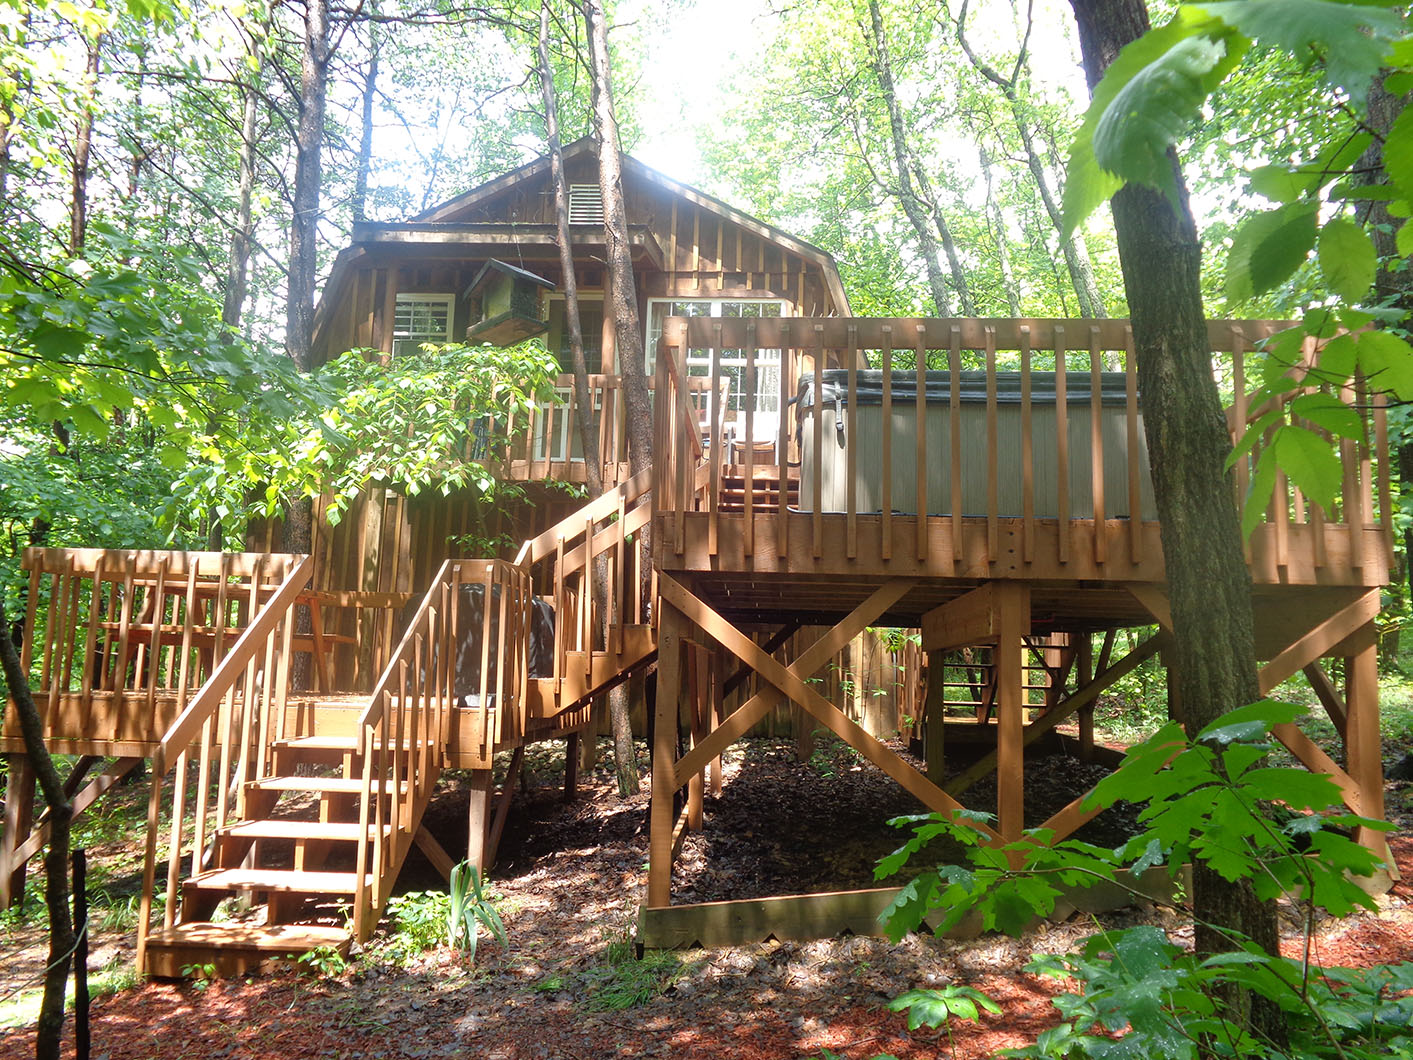 Exterior View of the Back of the Treehouse - Not handicapped accessible.